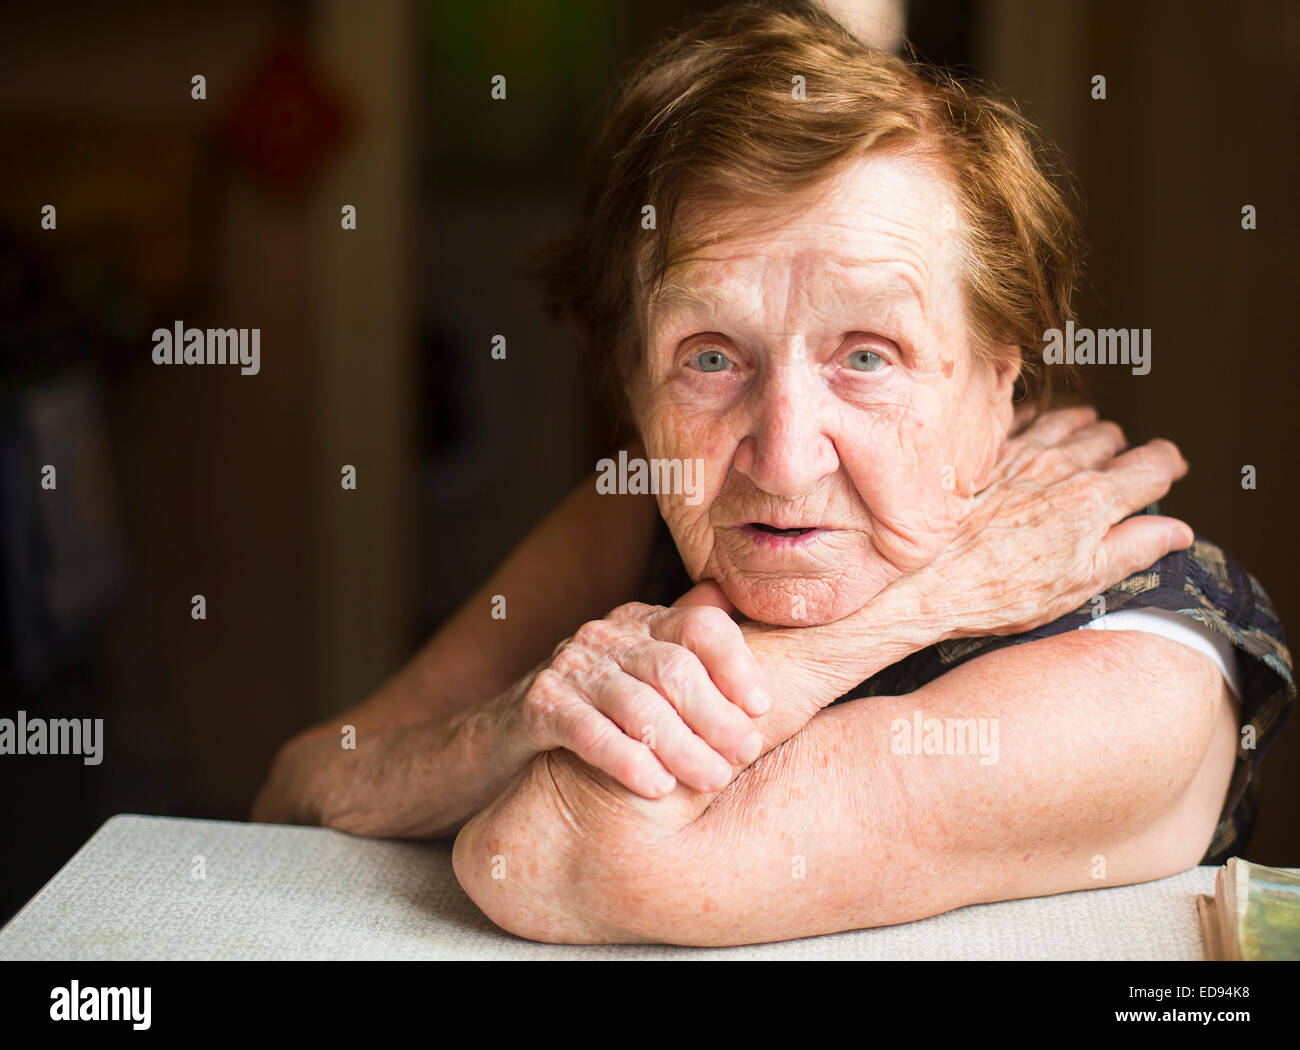 Image of: Crying Poor Old Woman In Her Home Looking Into The Camera Stock Image Alamy Russia Poor Old People Stock Photos Russia Poor Old People Stock